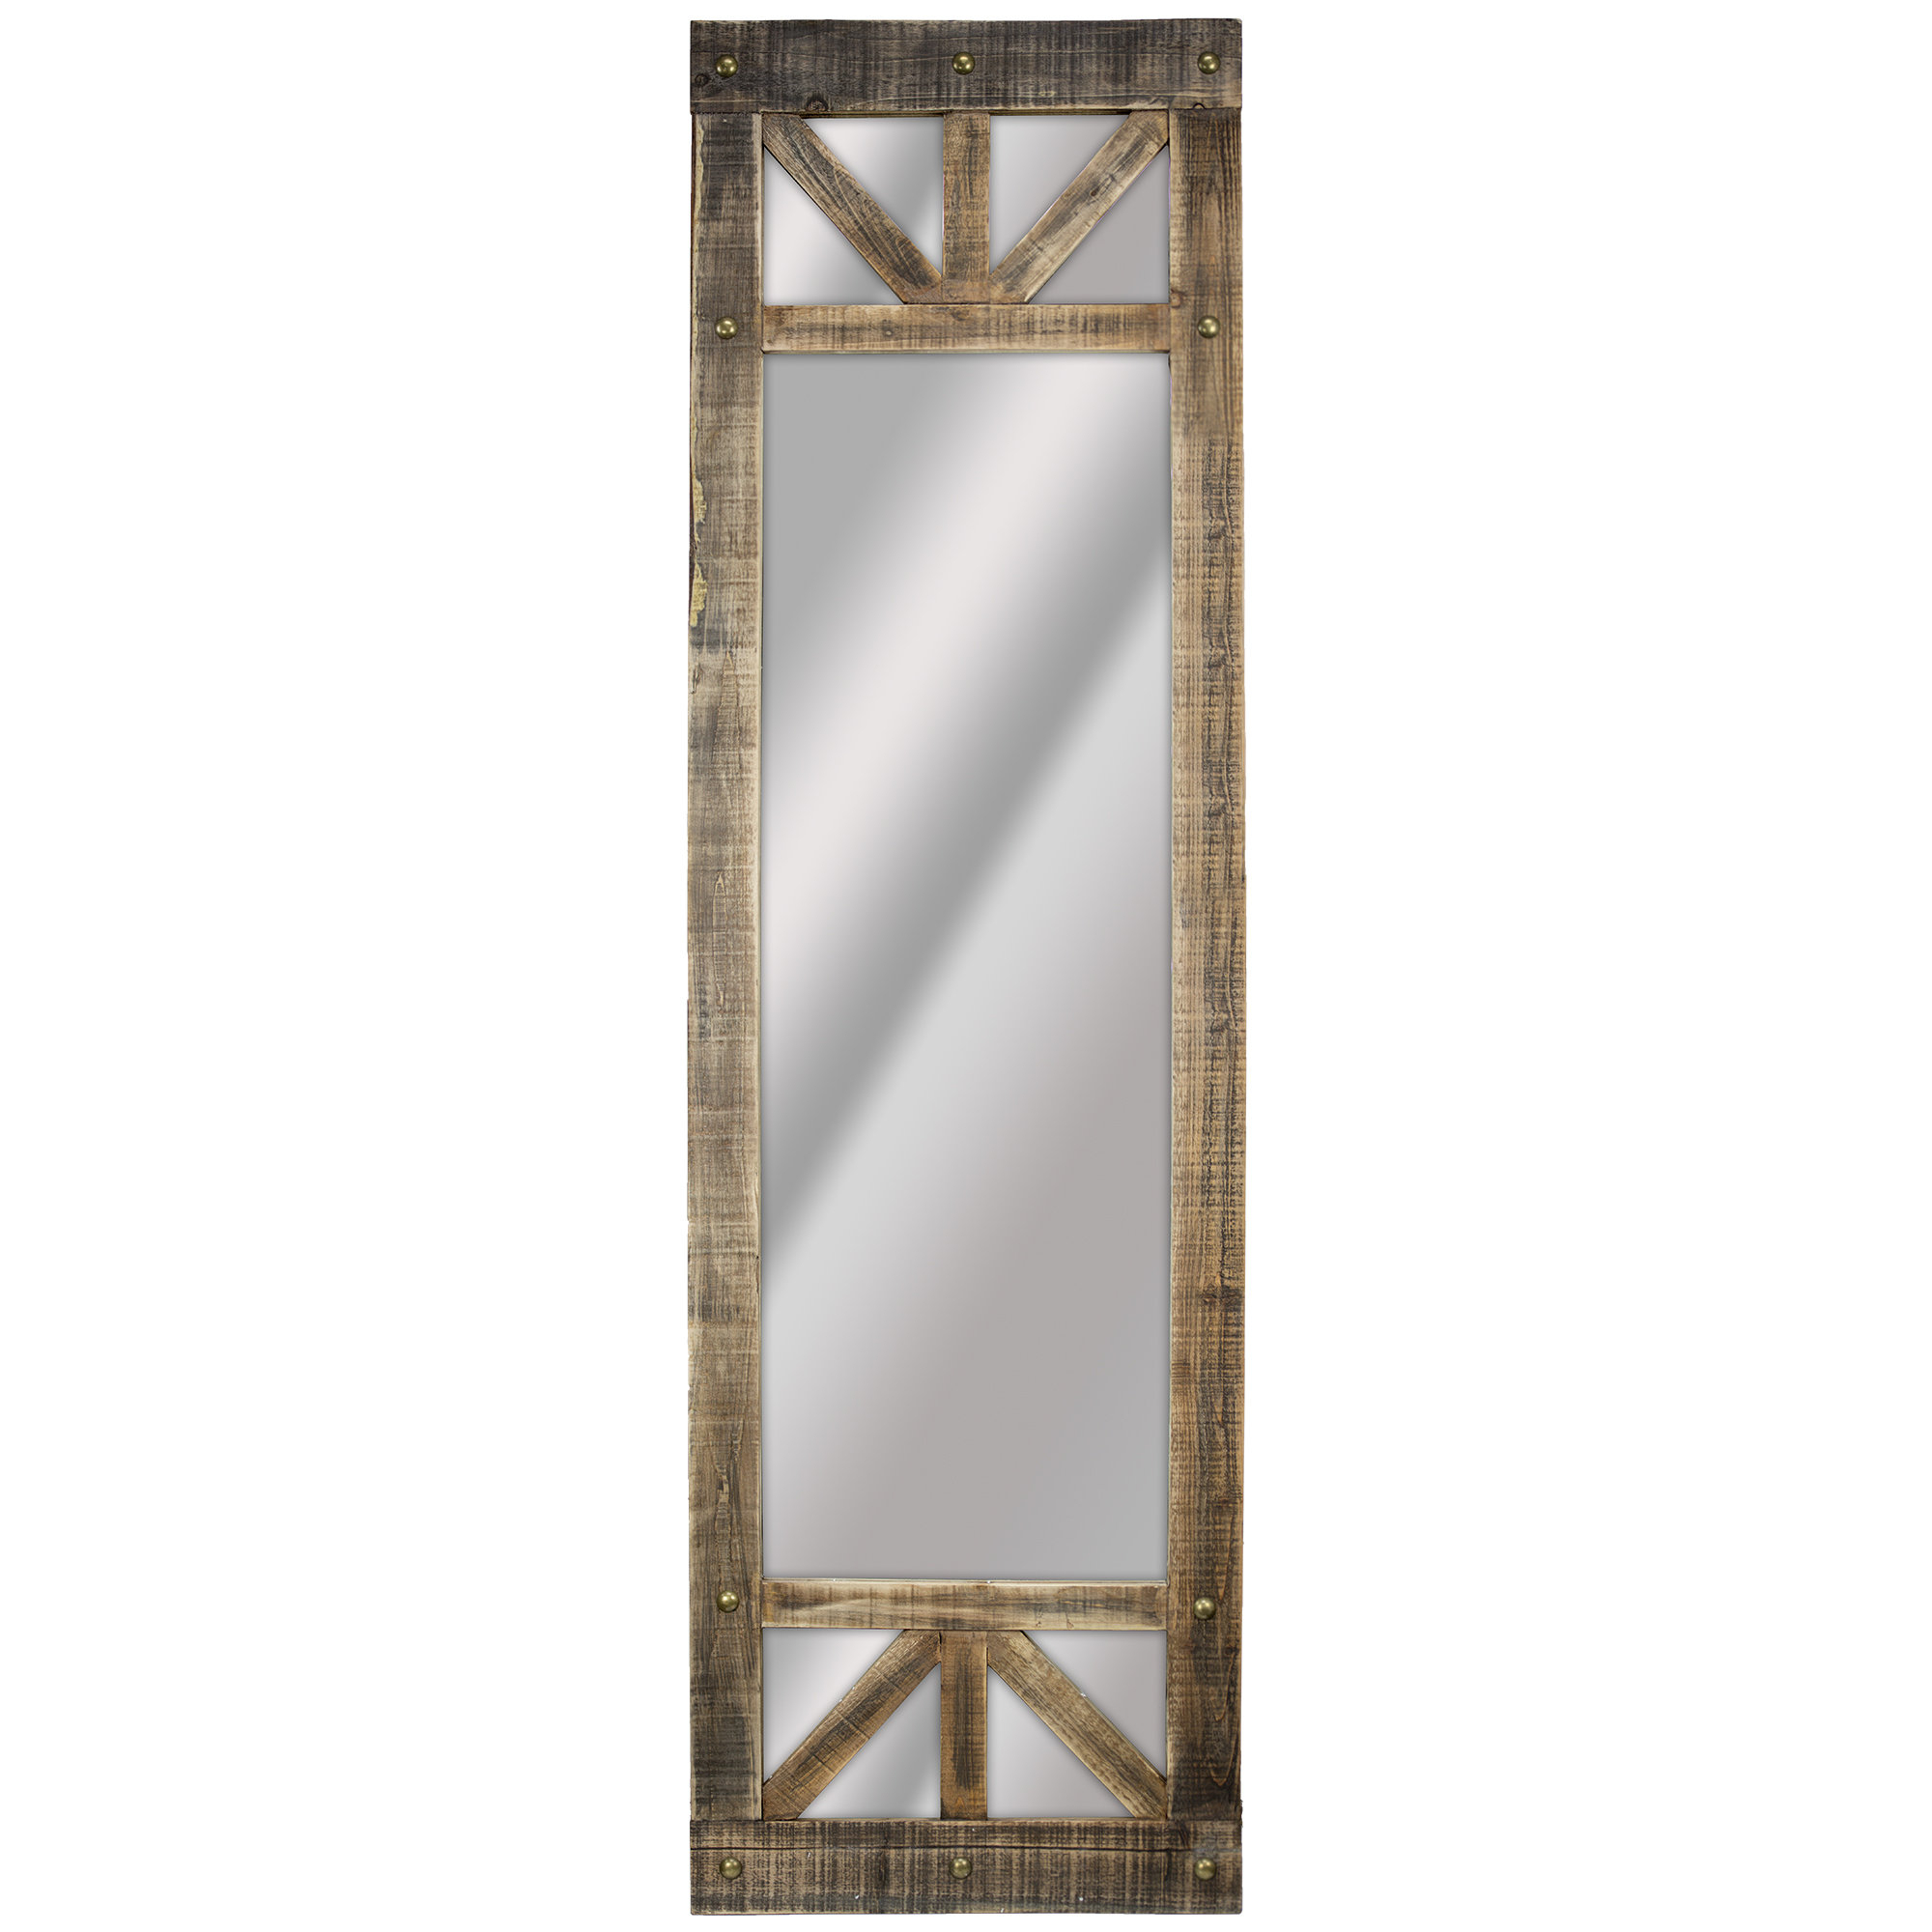 Delicia Décor Rustic Wood Full-Length Wall Mirror with Boyers Wall Mirrors (Image 16 of 30)